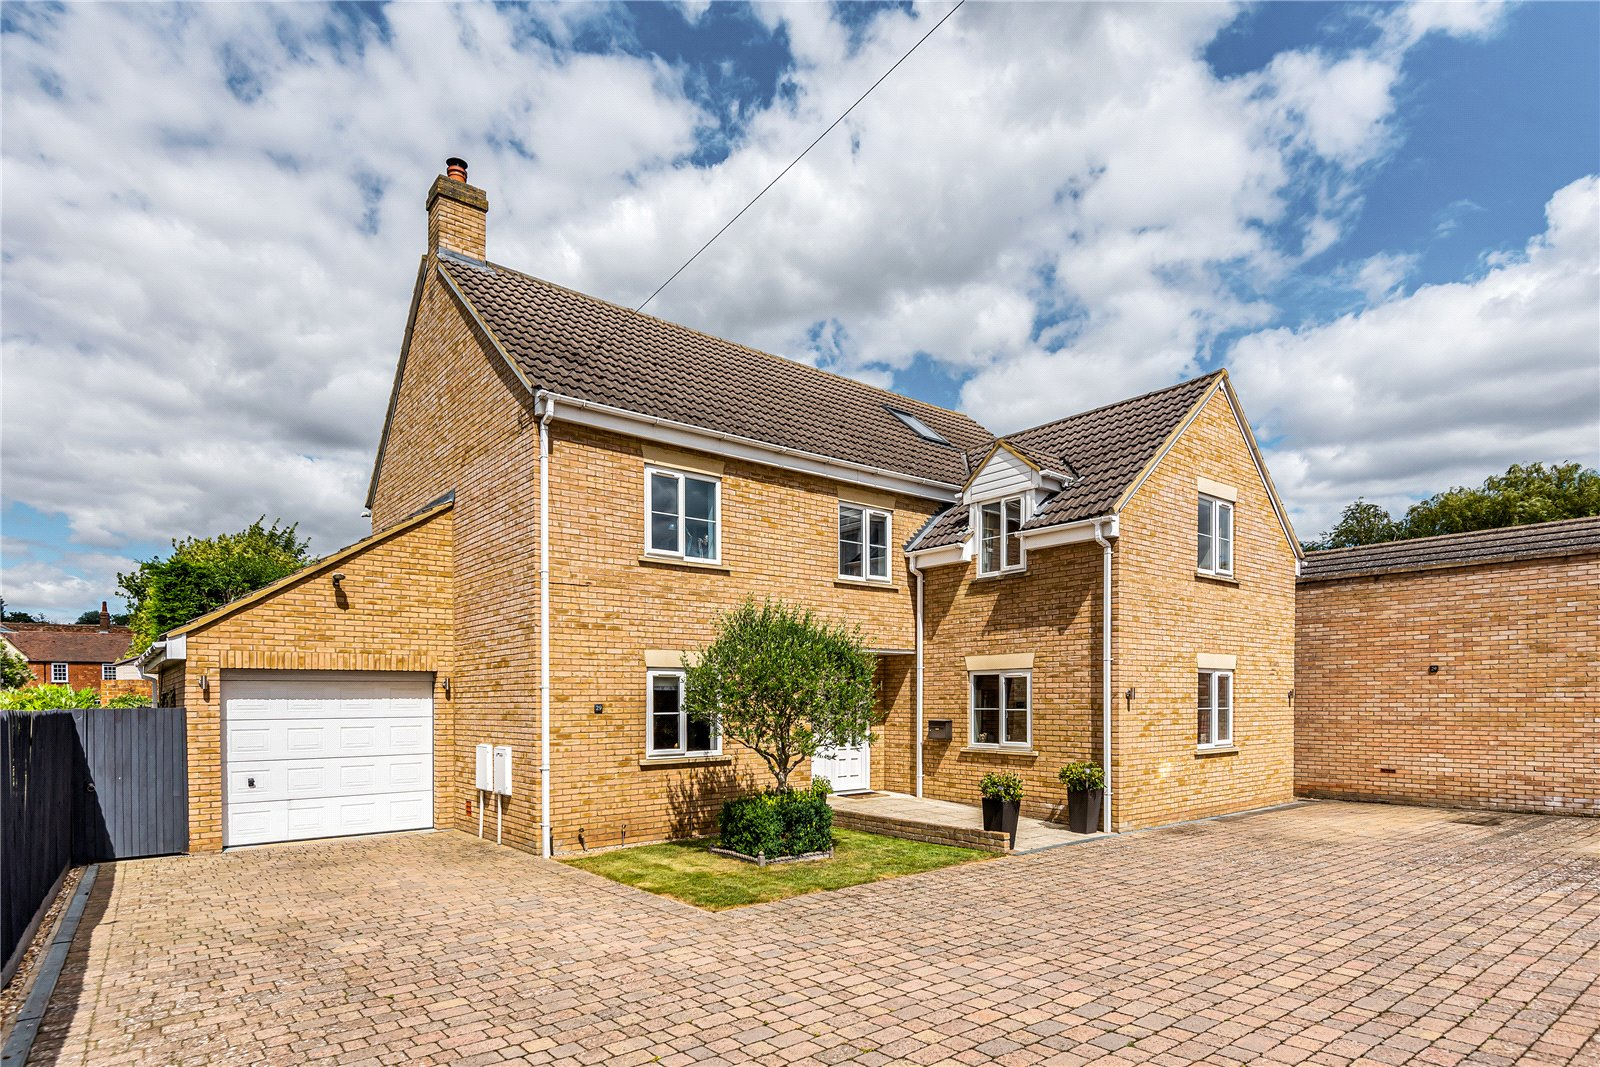 5 bed house for sale in Hunts End, Buckden  - Property Image 1